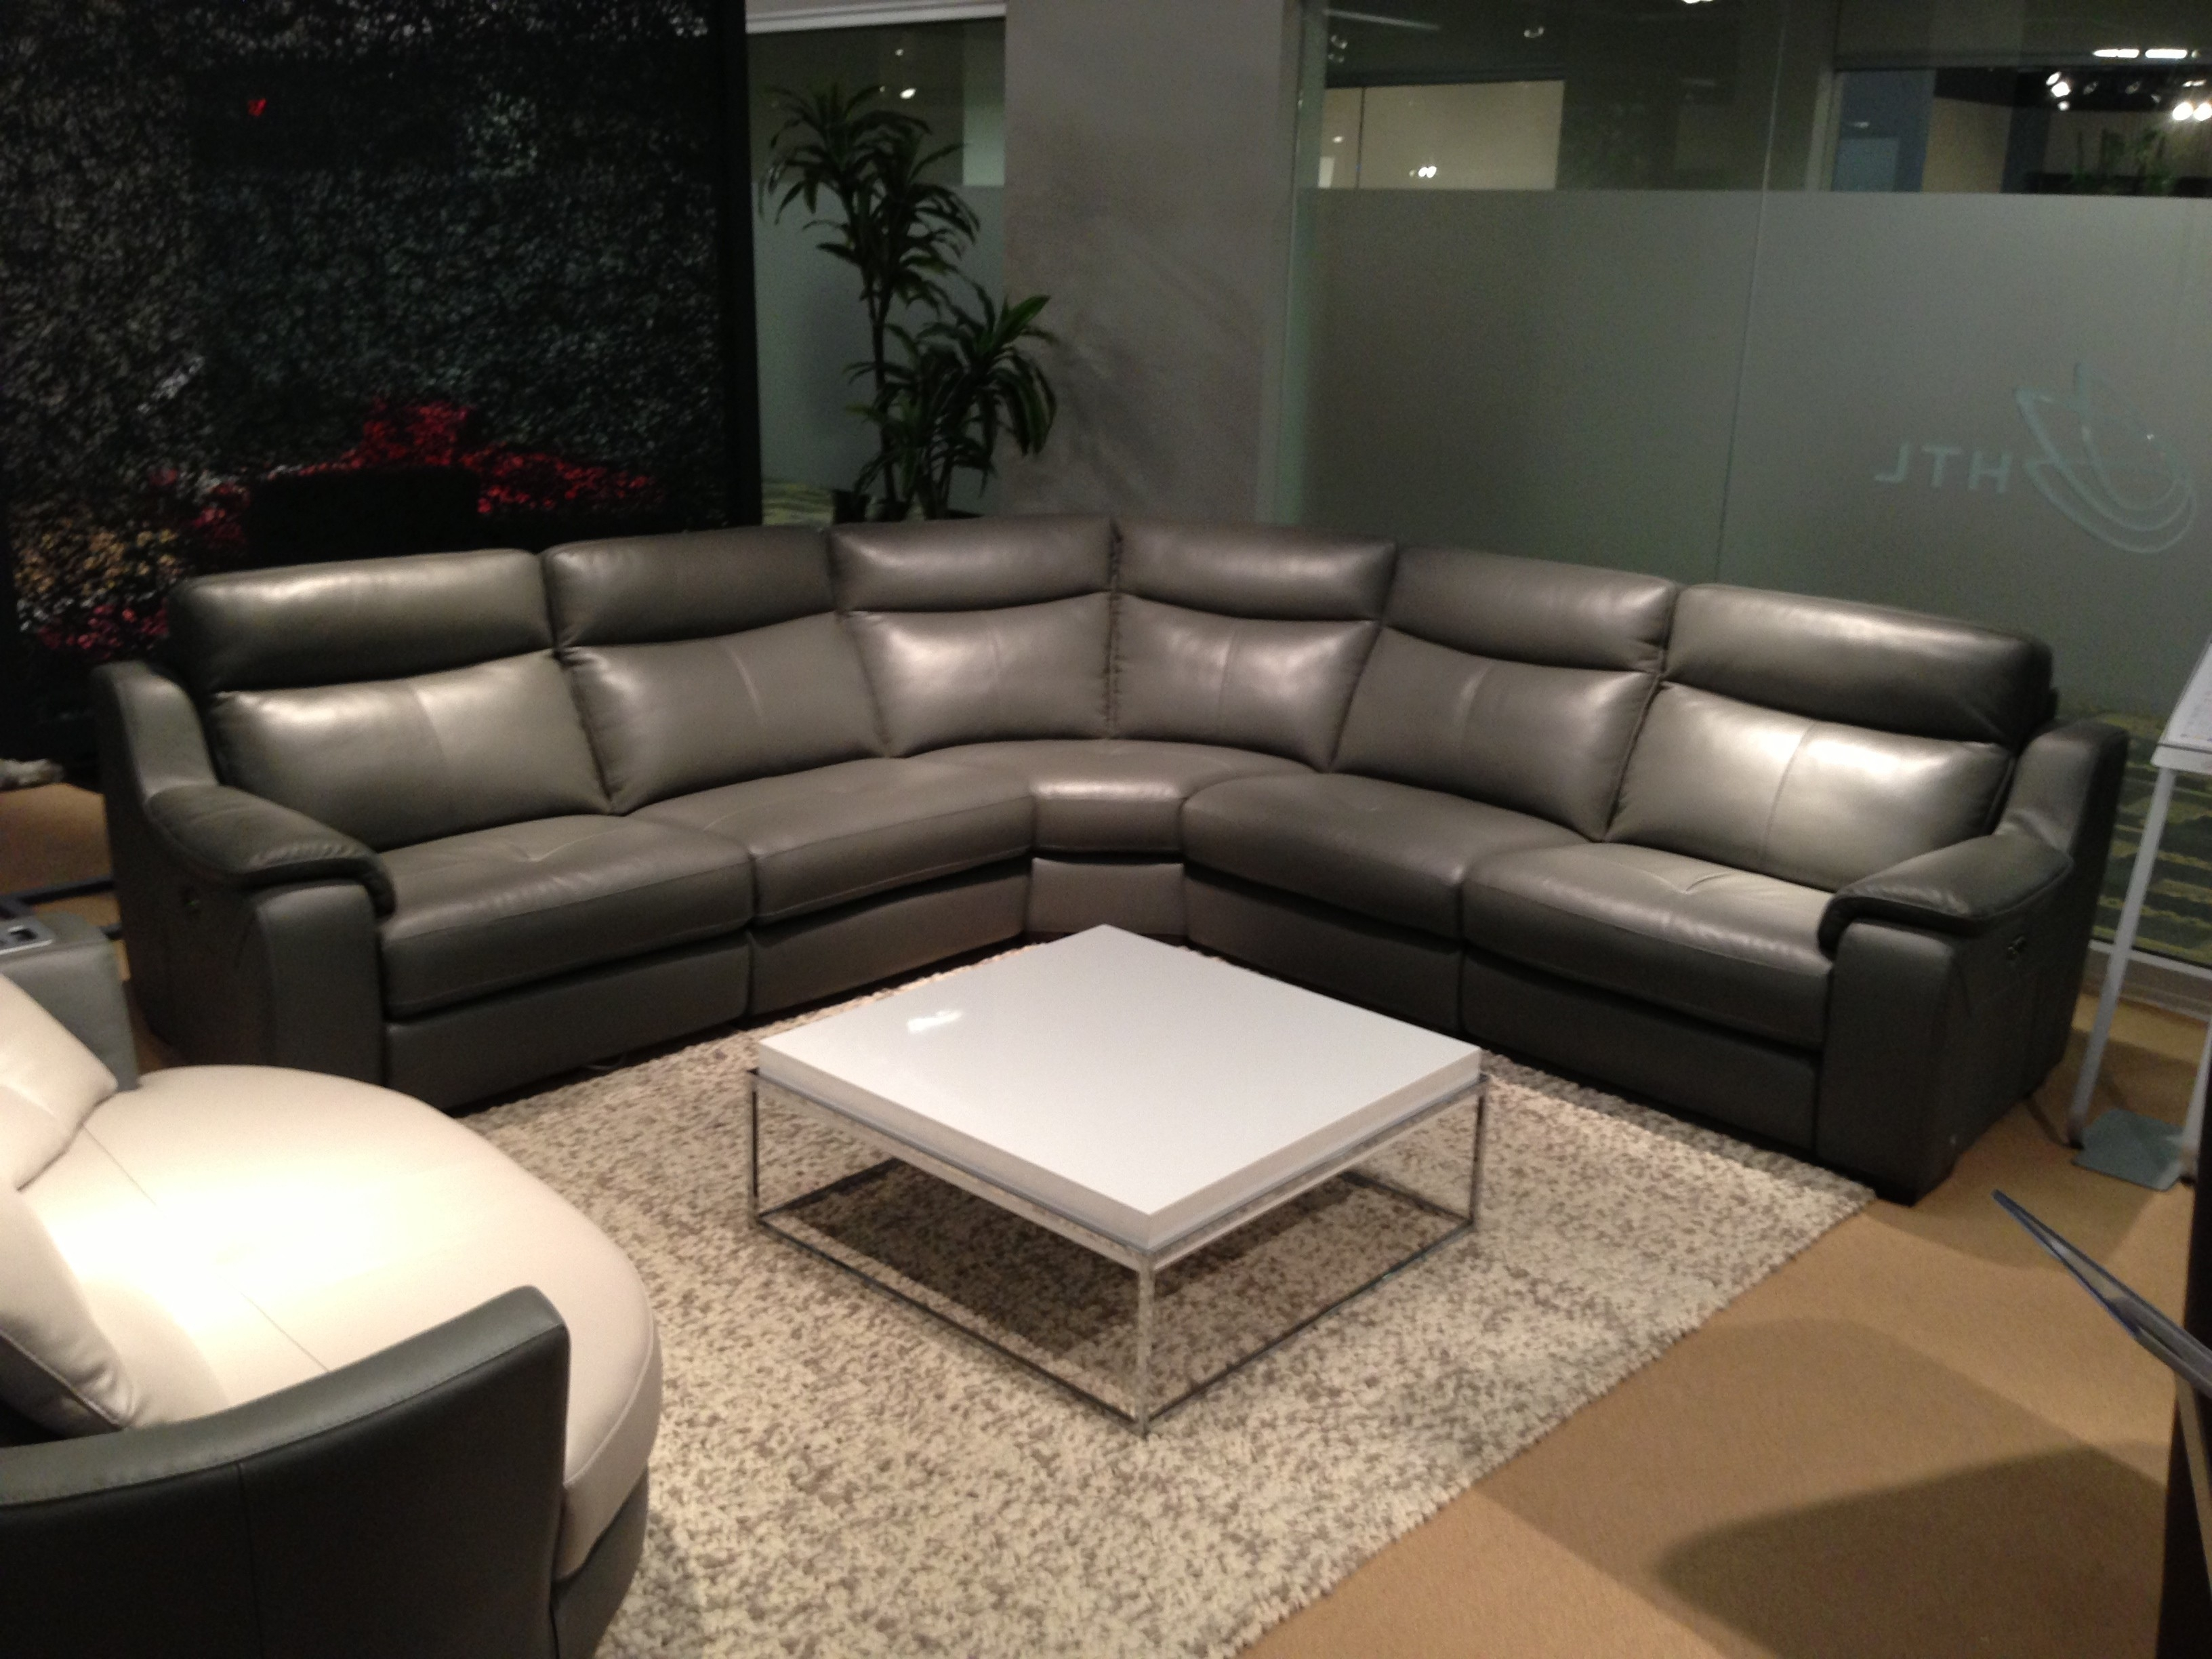 Sectional Sofa Designs Bangalore | Www.energywarden intended for Sectional Sofas at Bangalore (Image 11 of 15)